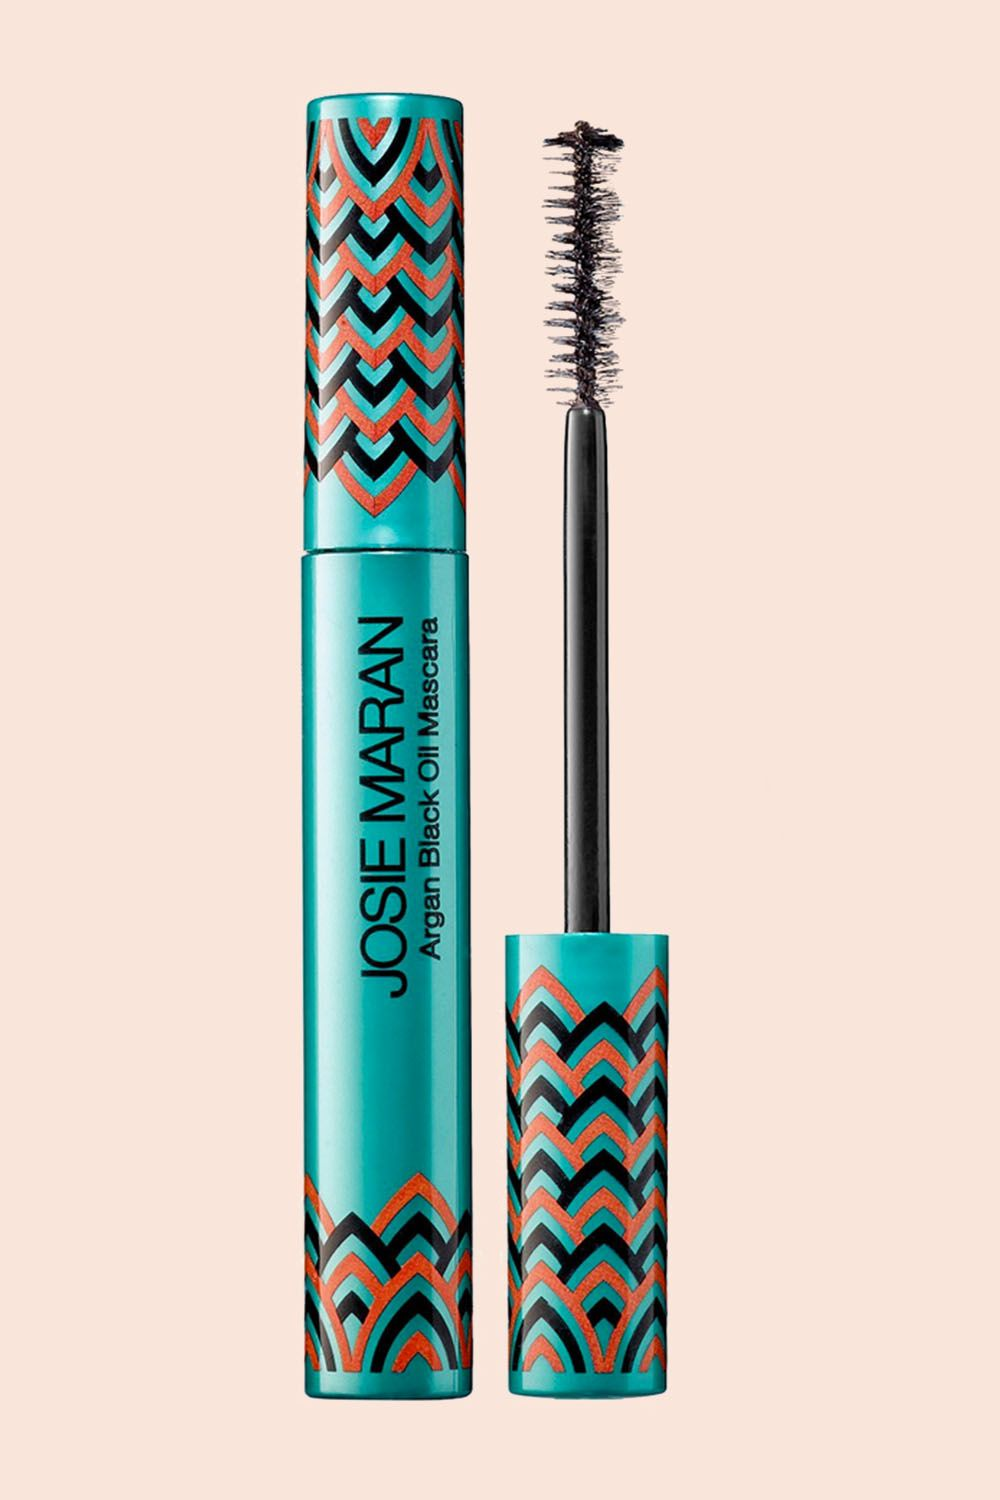 """<p>Argan, AKA liquid gold, is the essential oil women look to tomake their lashes grow. In this treatment, Maran mixes 100% pure argan oil, ultra-black iron mineral pigments, andbamboo properties together to strengthen lashes while givingyou the doe-eyed look.</p><p><br></p><p>Josie Maran Argan Black Oil Mascara, $22; <a href=""""http://bit.ly/2iJgVV4"""" target=""""_blank"""" data-tracking-id=""""recirc-text-link"""">sephora.com</a>.</p>"""